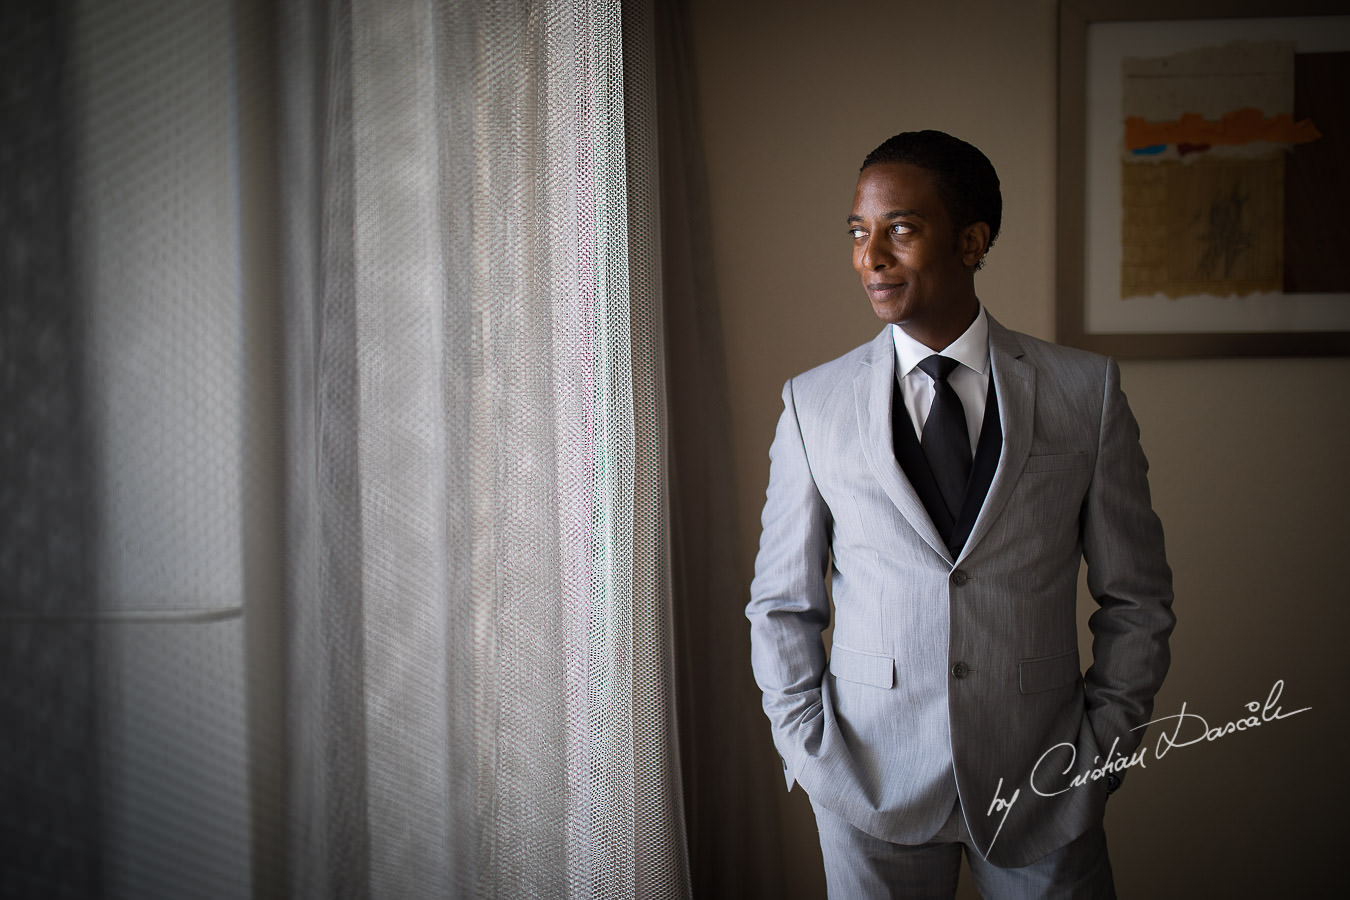 Groom portrait captured during an Exquisite Wedding at Asterias Beach Hotel by Cyprus Photographer Cristian Dascalu.